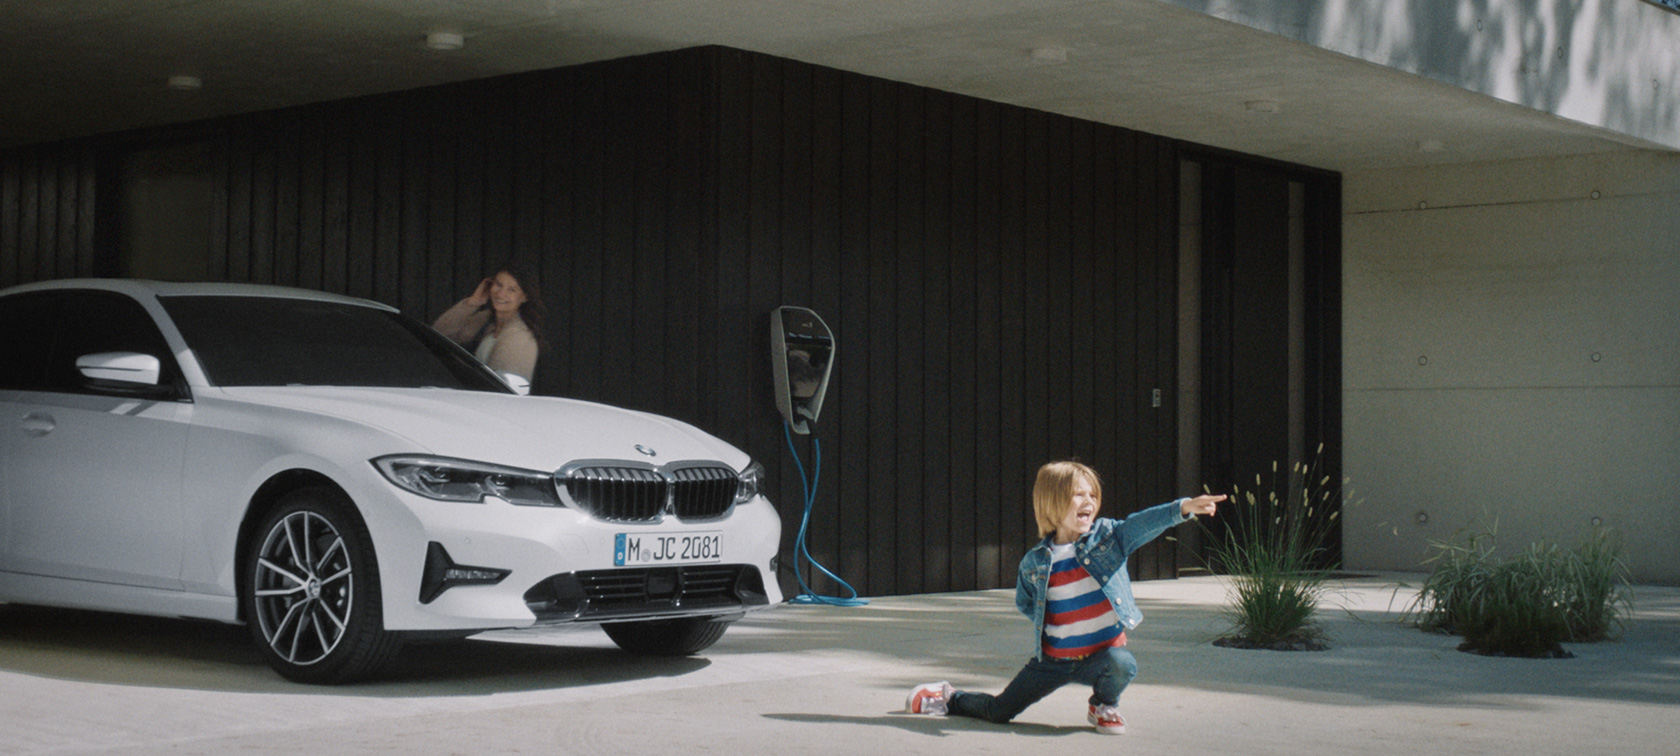 BMW plug-in hybrids boy in front of BMW hybrid vehicle at charging station